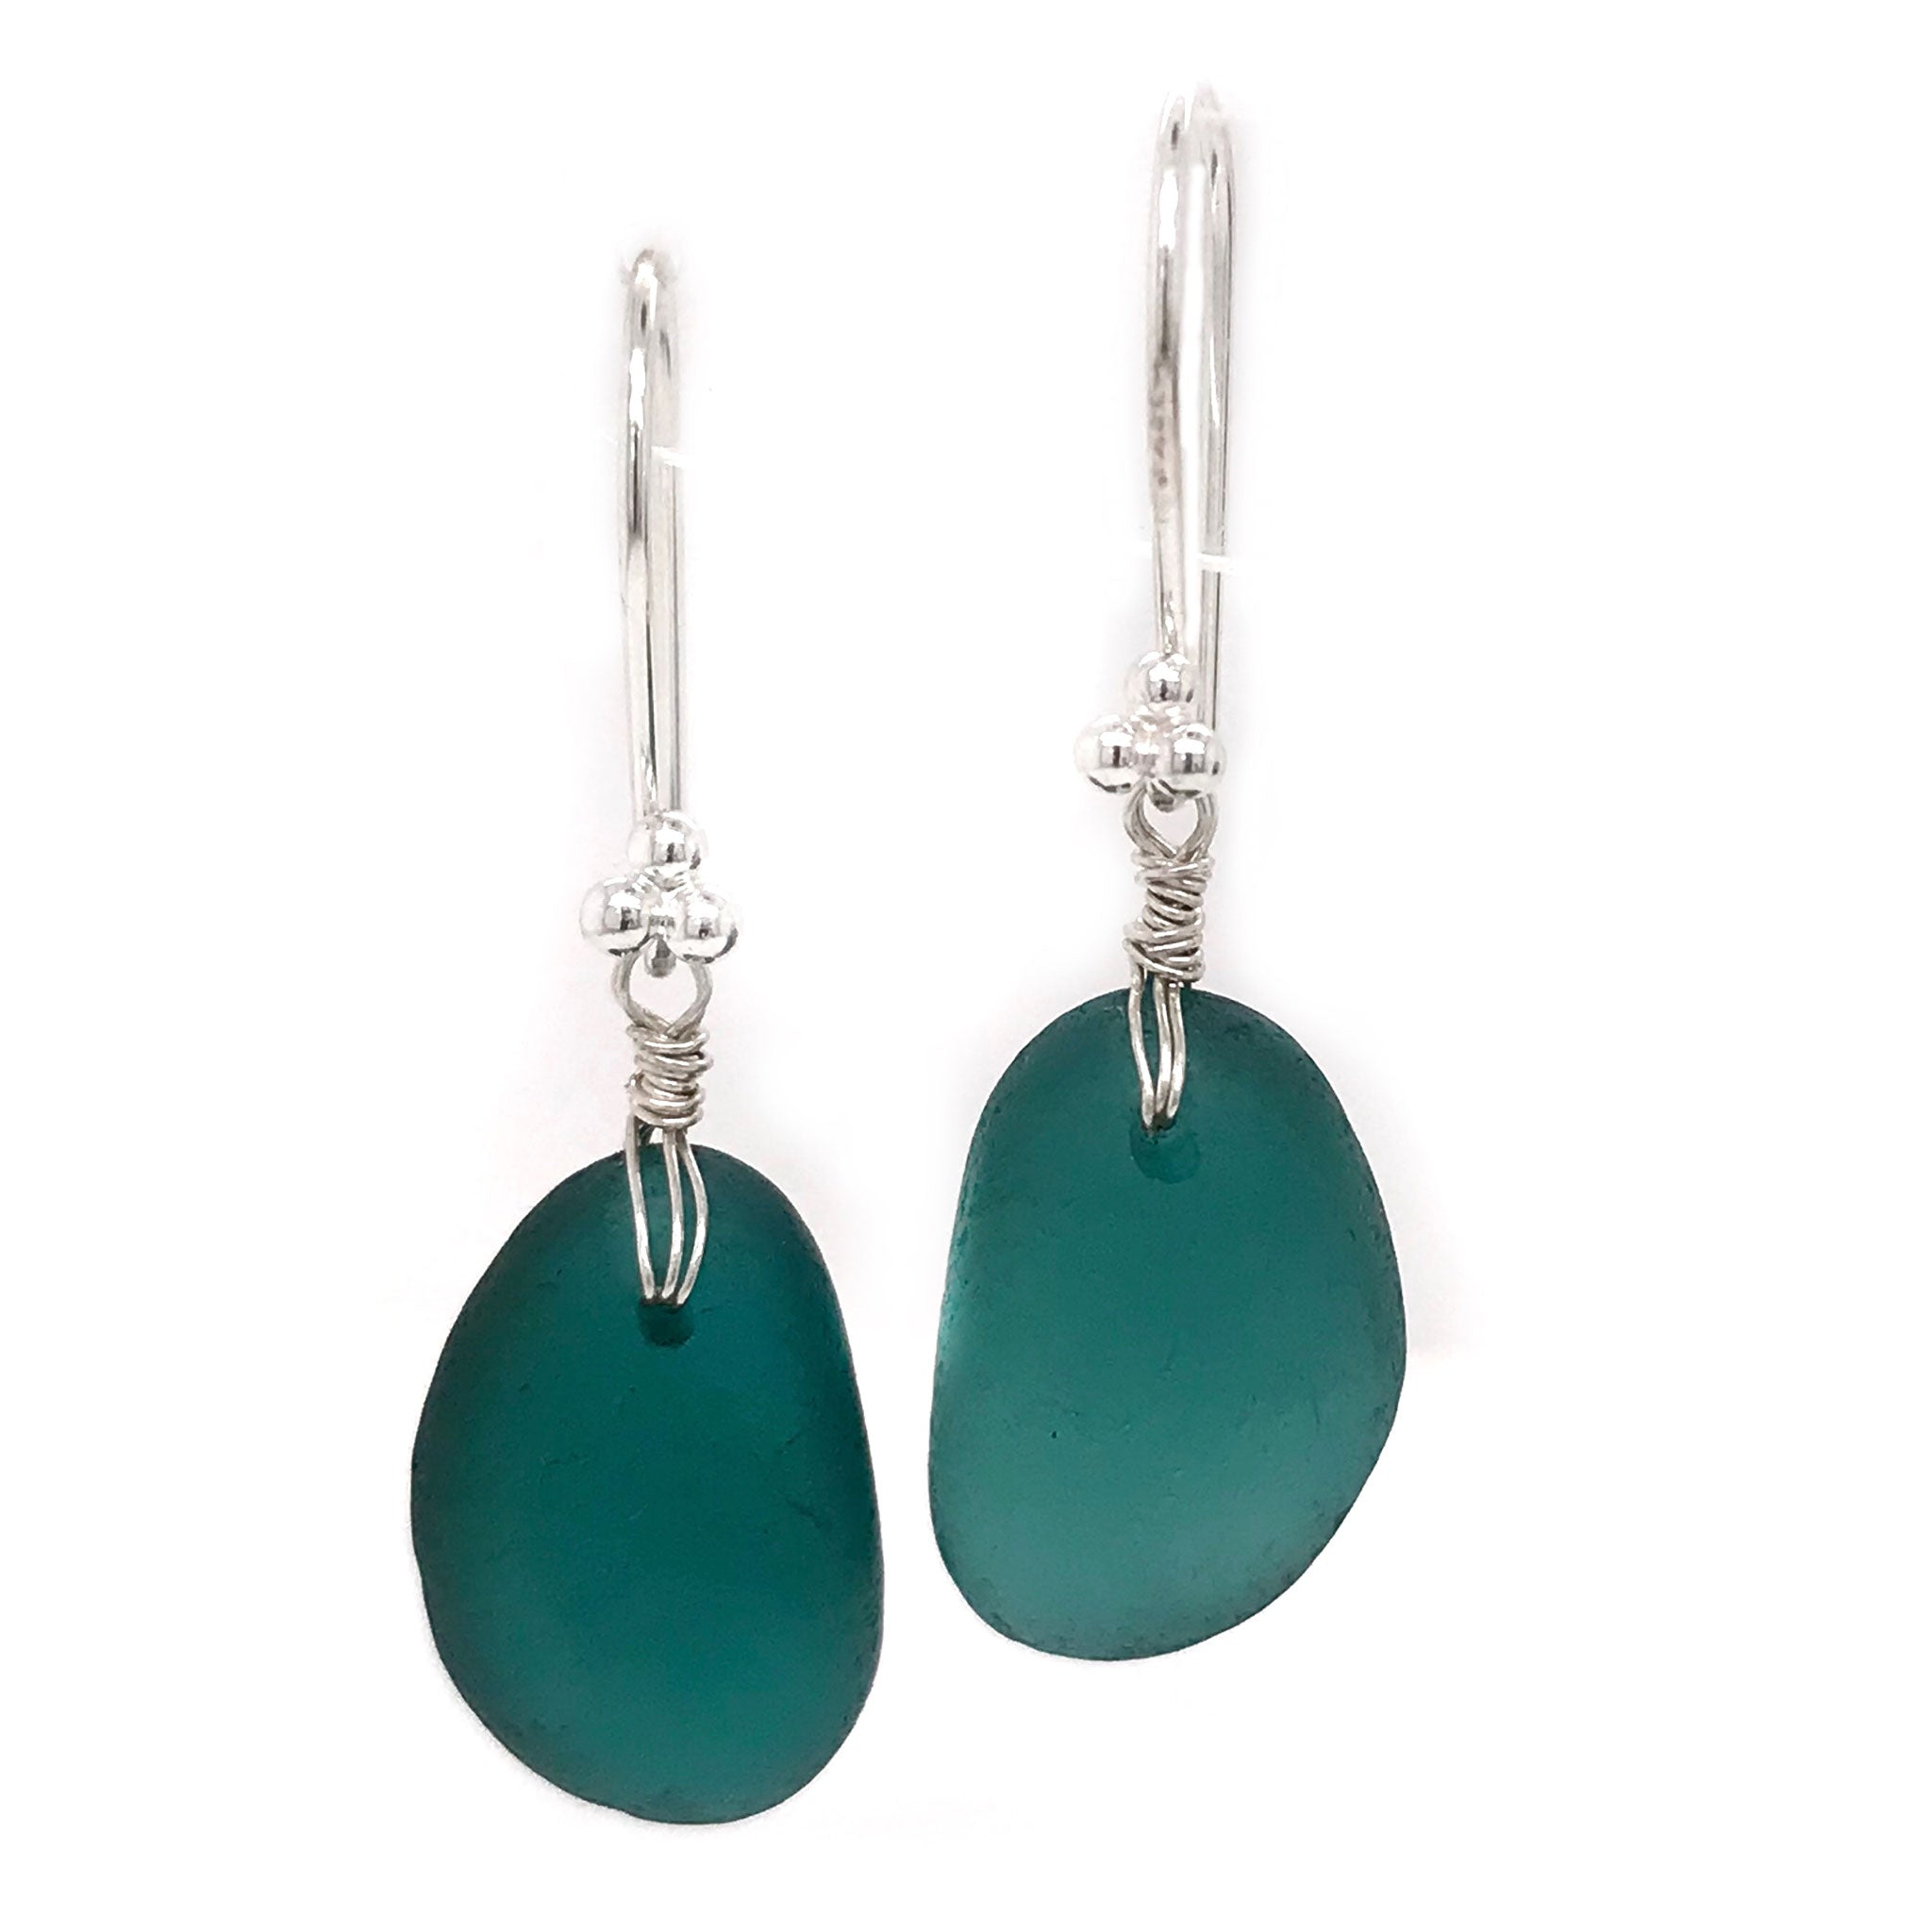 teal seaglass earrings sterling silver drops Kriket Broadhurst jewellery Australian made